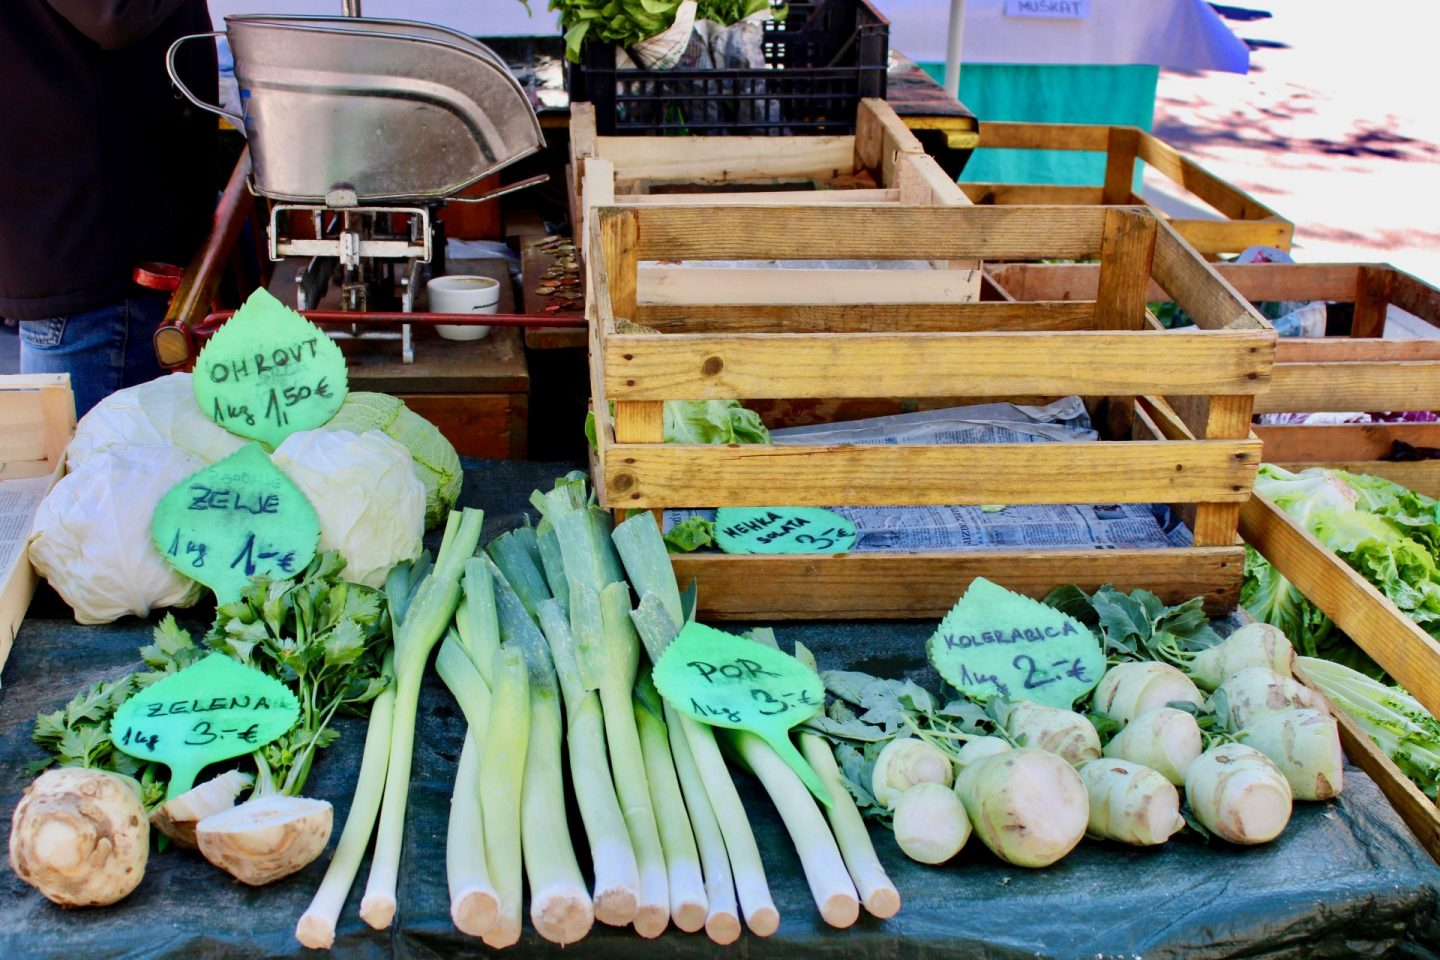 24 hours in Ljubljana food & wine: A market in Ljubljana showing green vegetables next to a wooden crate